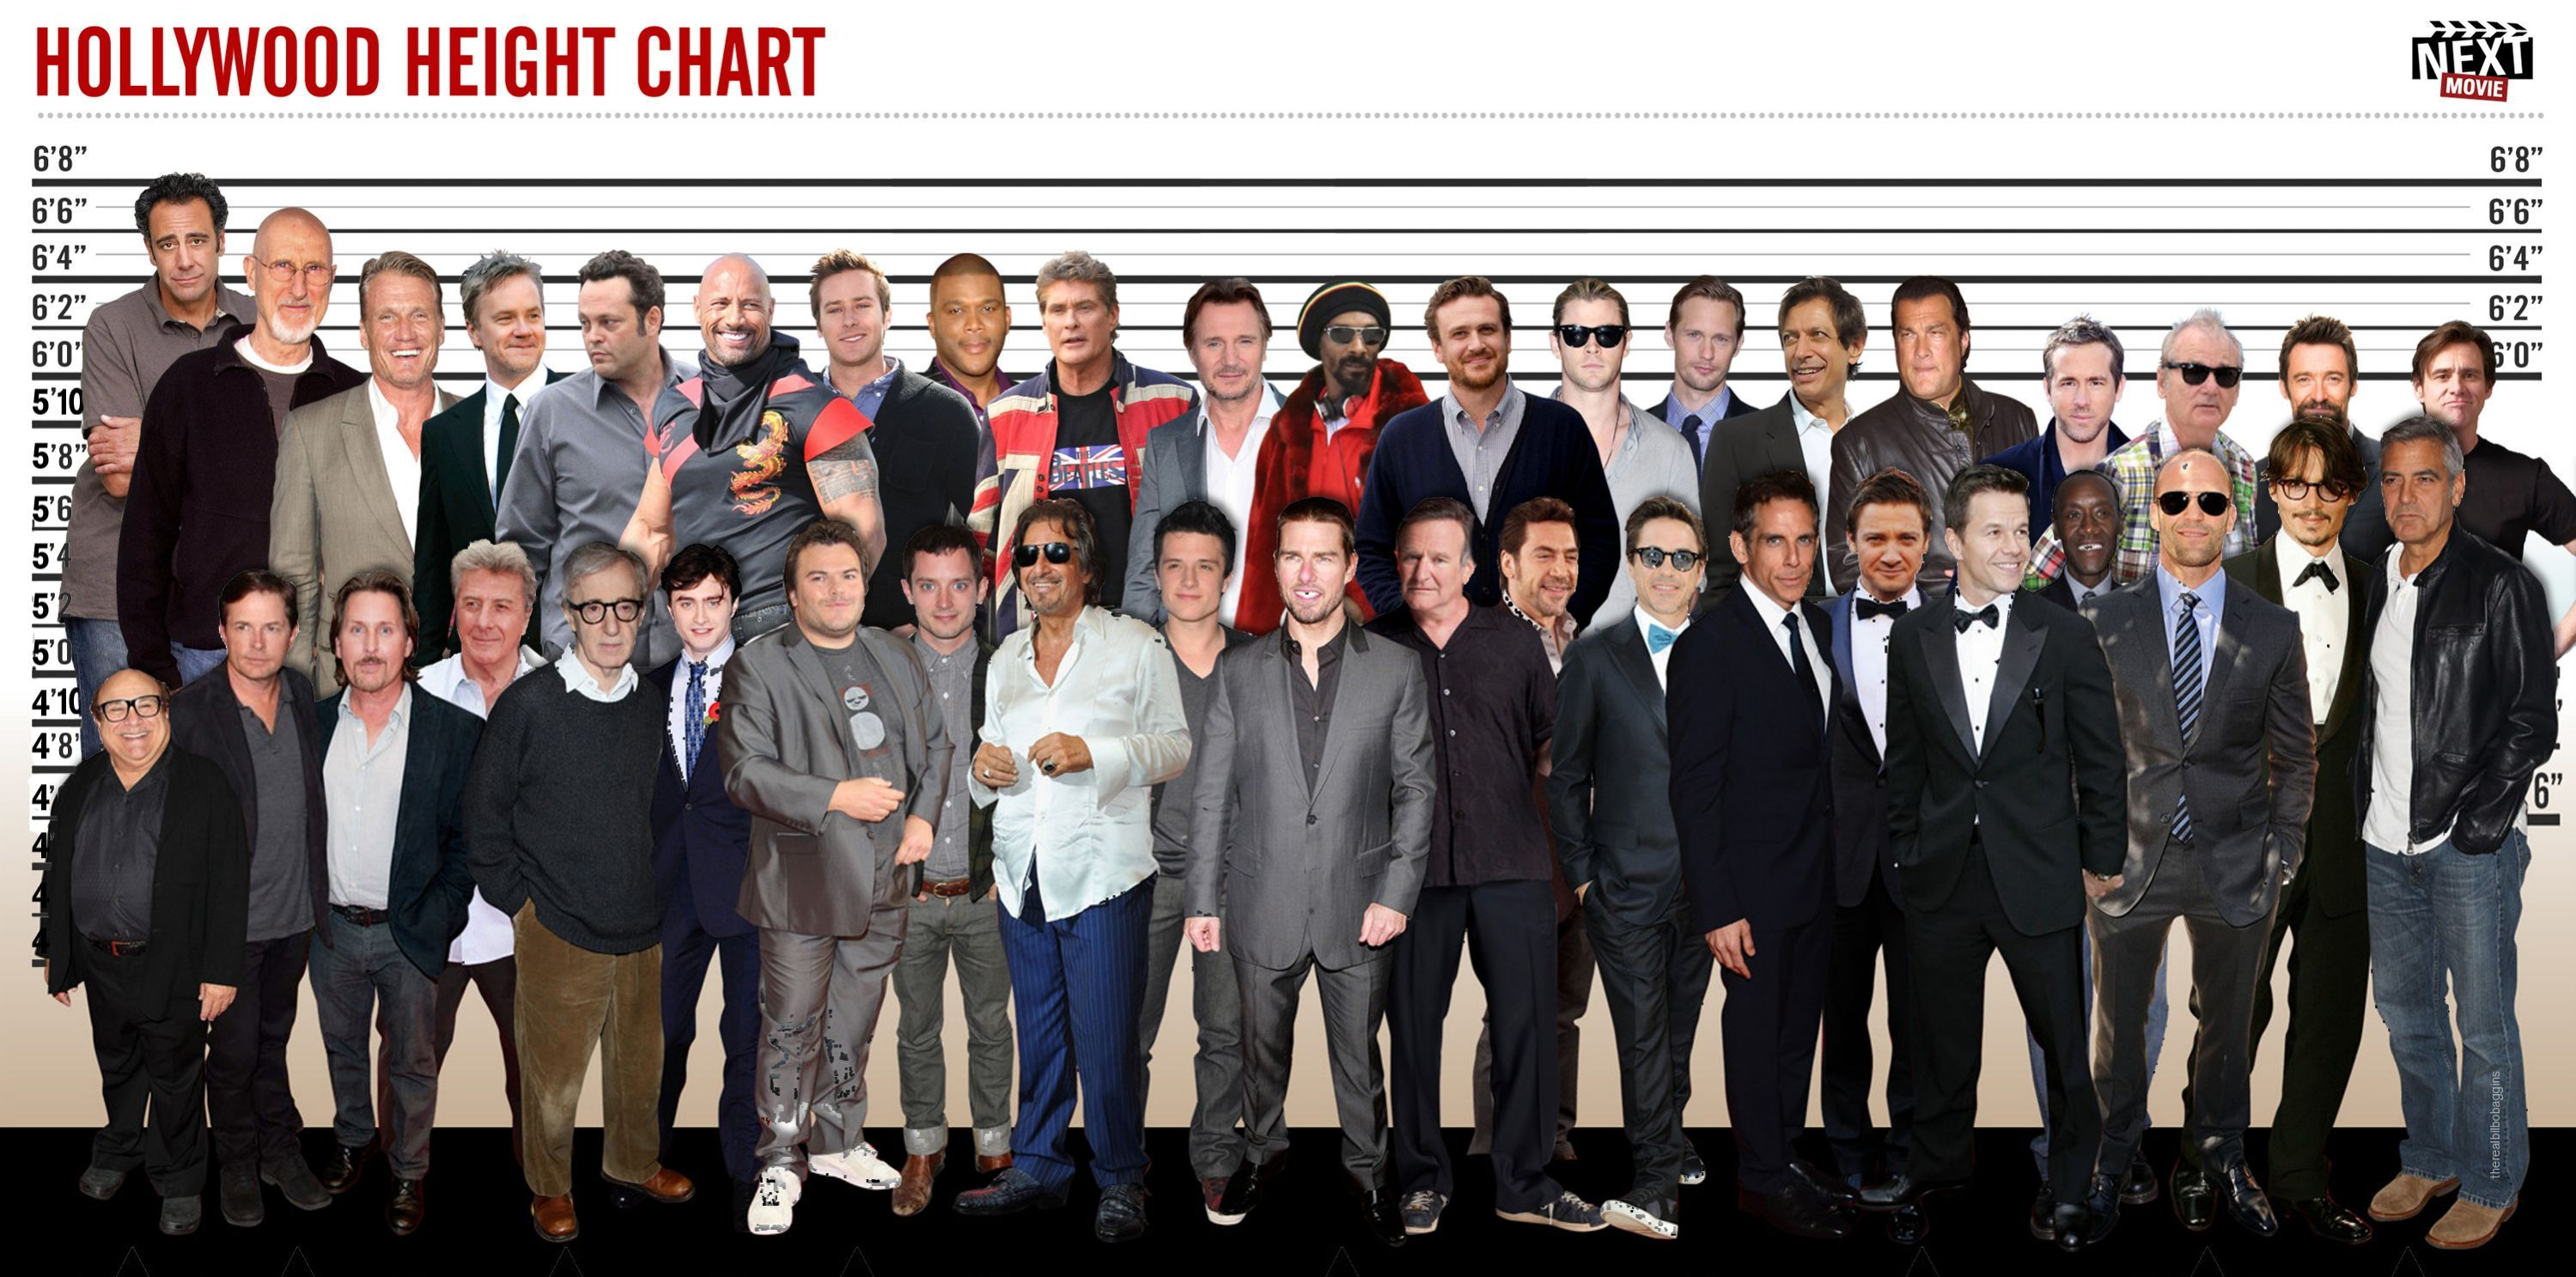 Improved Hollywood Height Chart